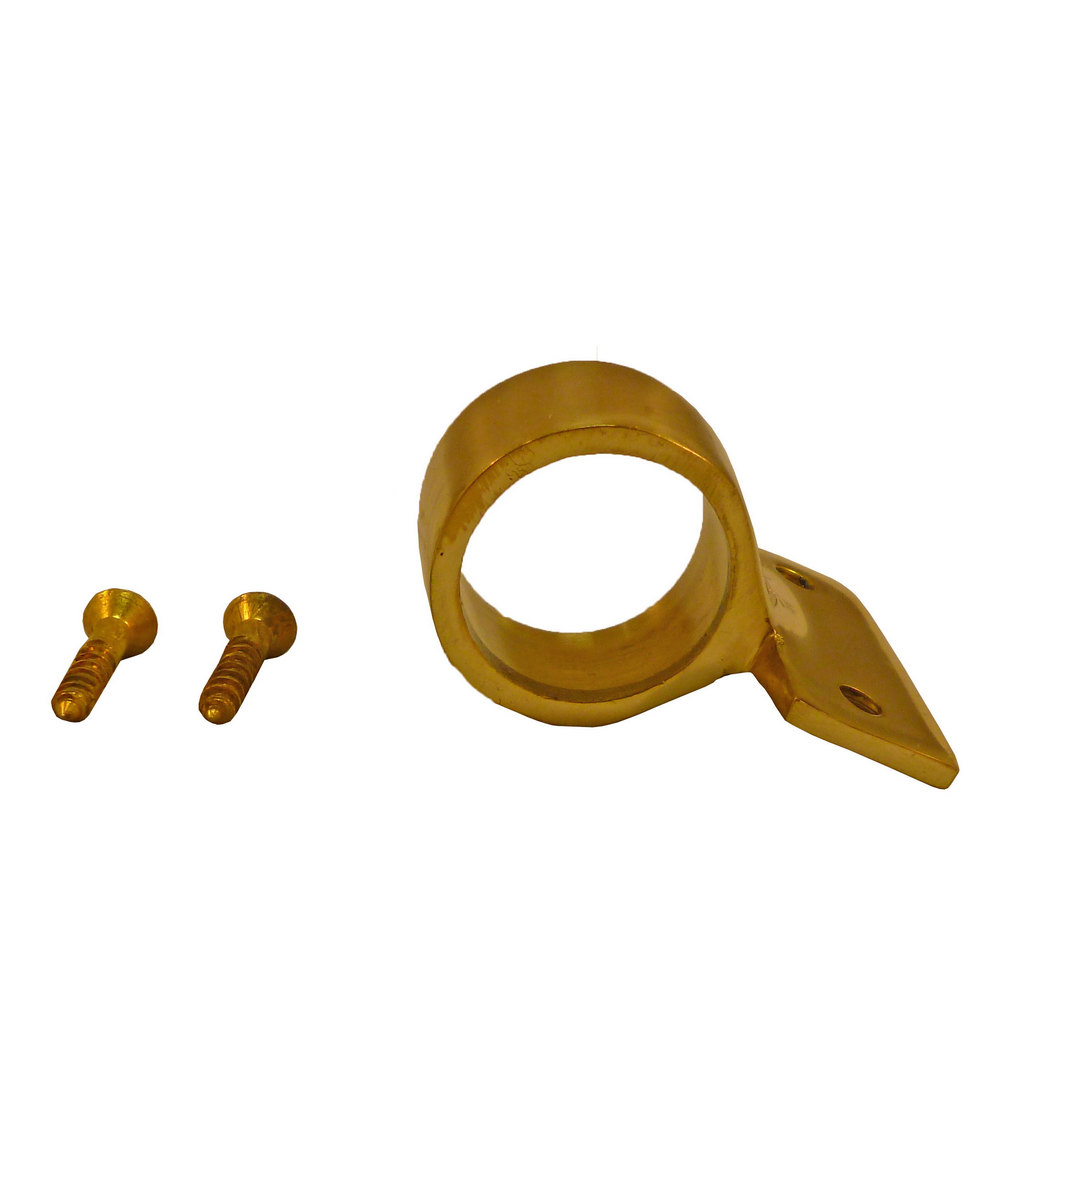 Sash Ring Lift Centre Mounting 30mm Polished Brass